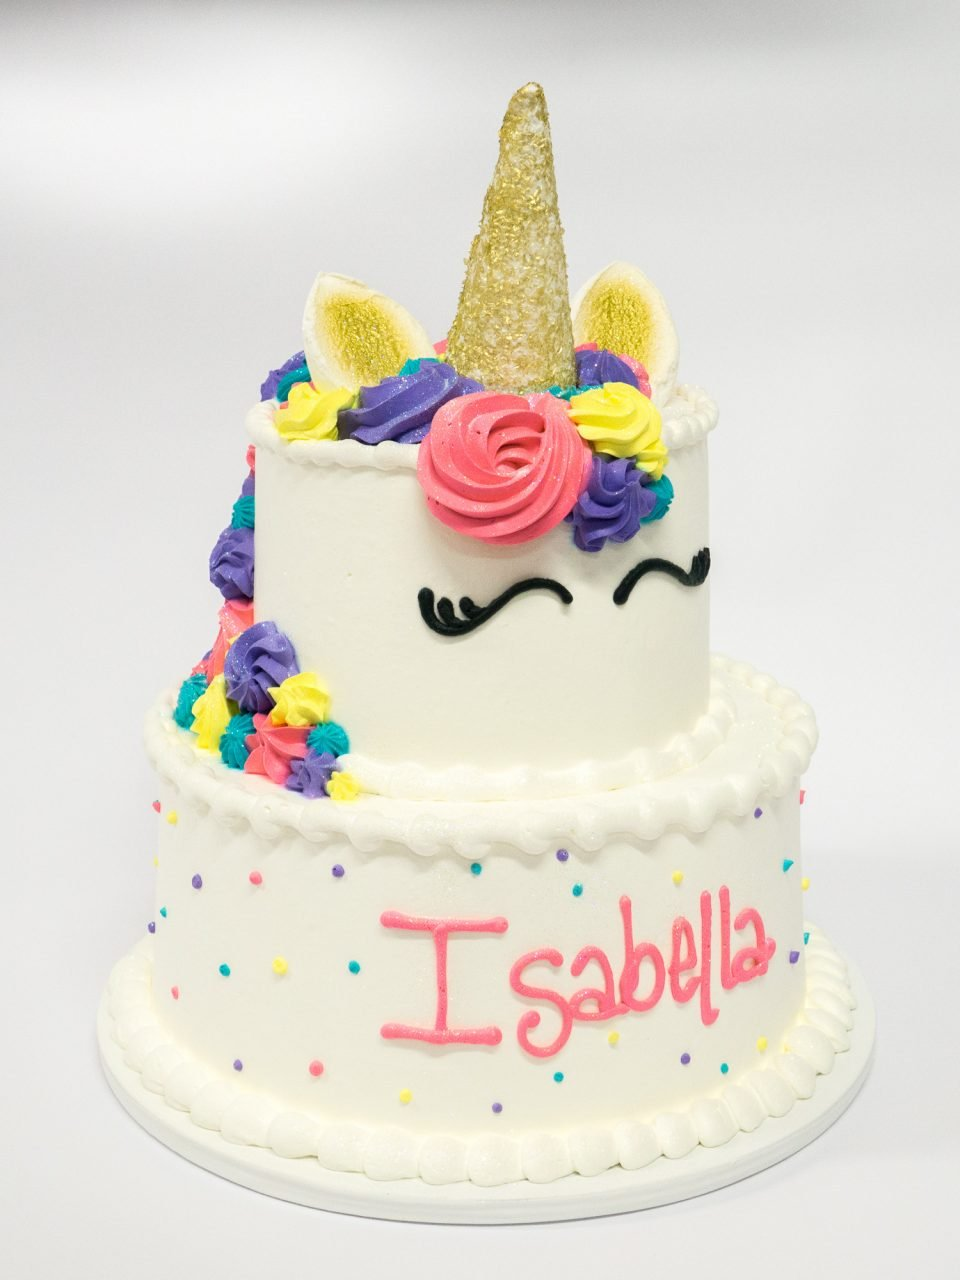 Photo of a unicorn 2 tier cake - Patty's Cakes and Desserts